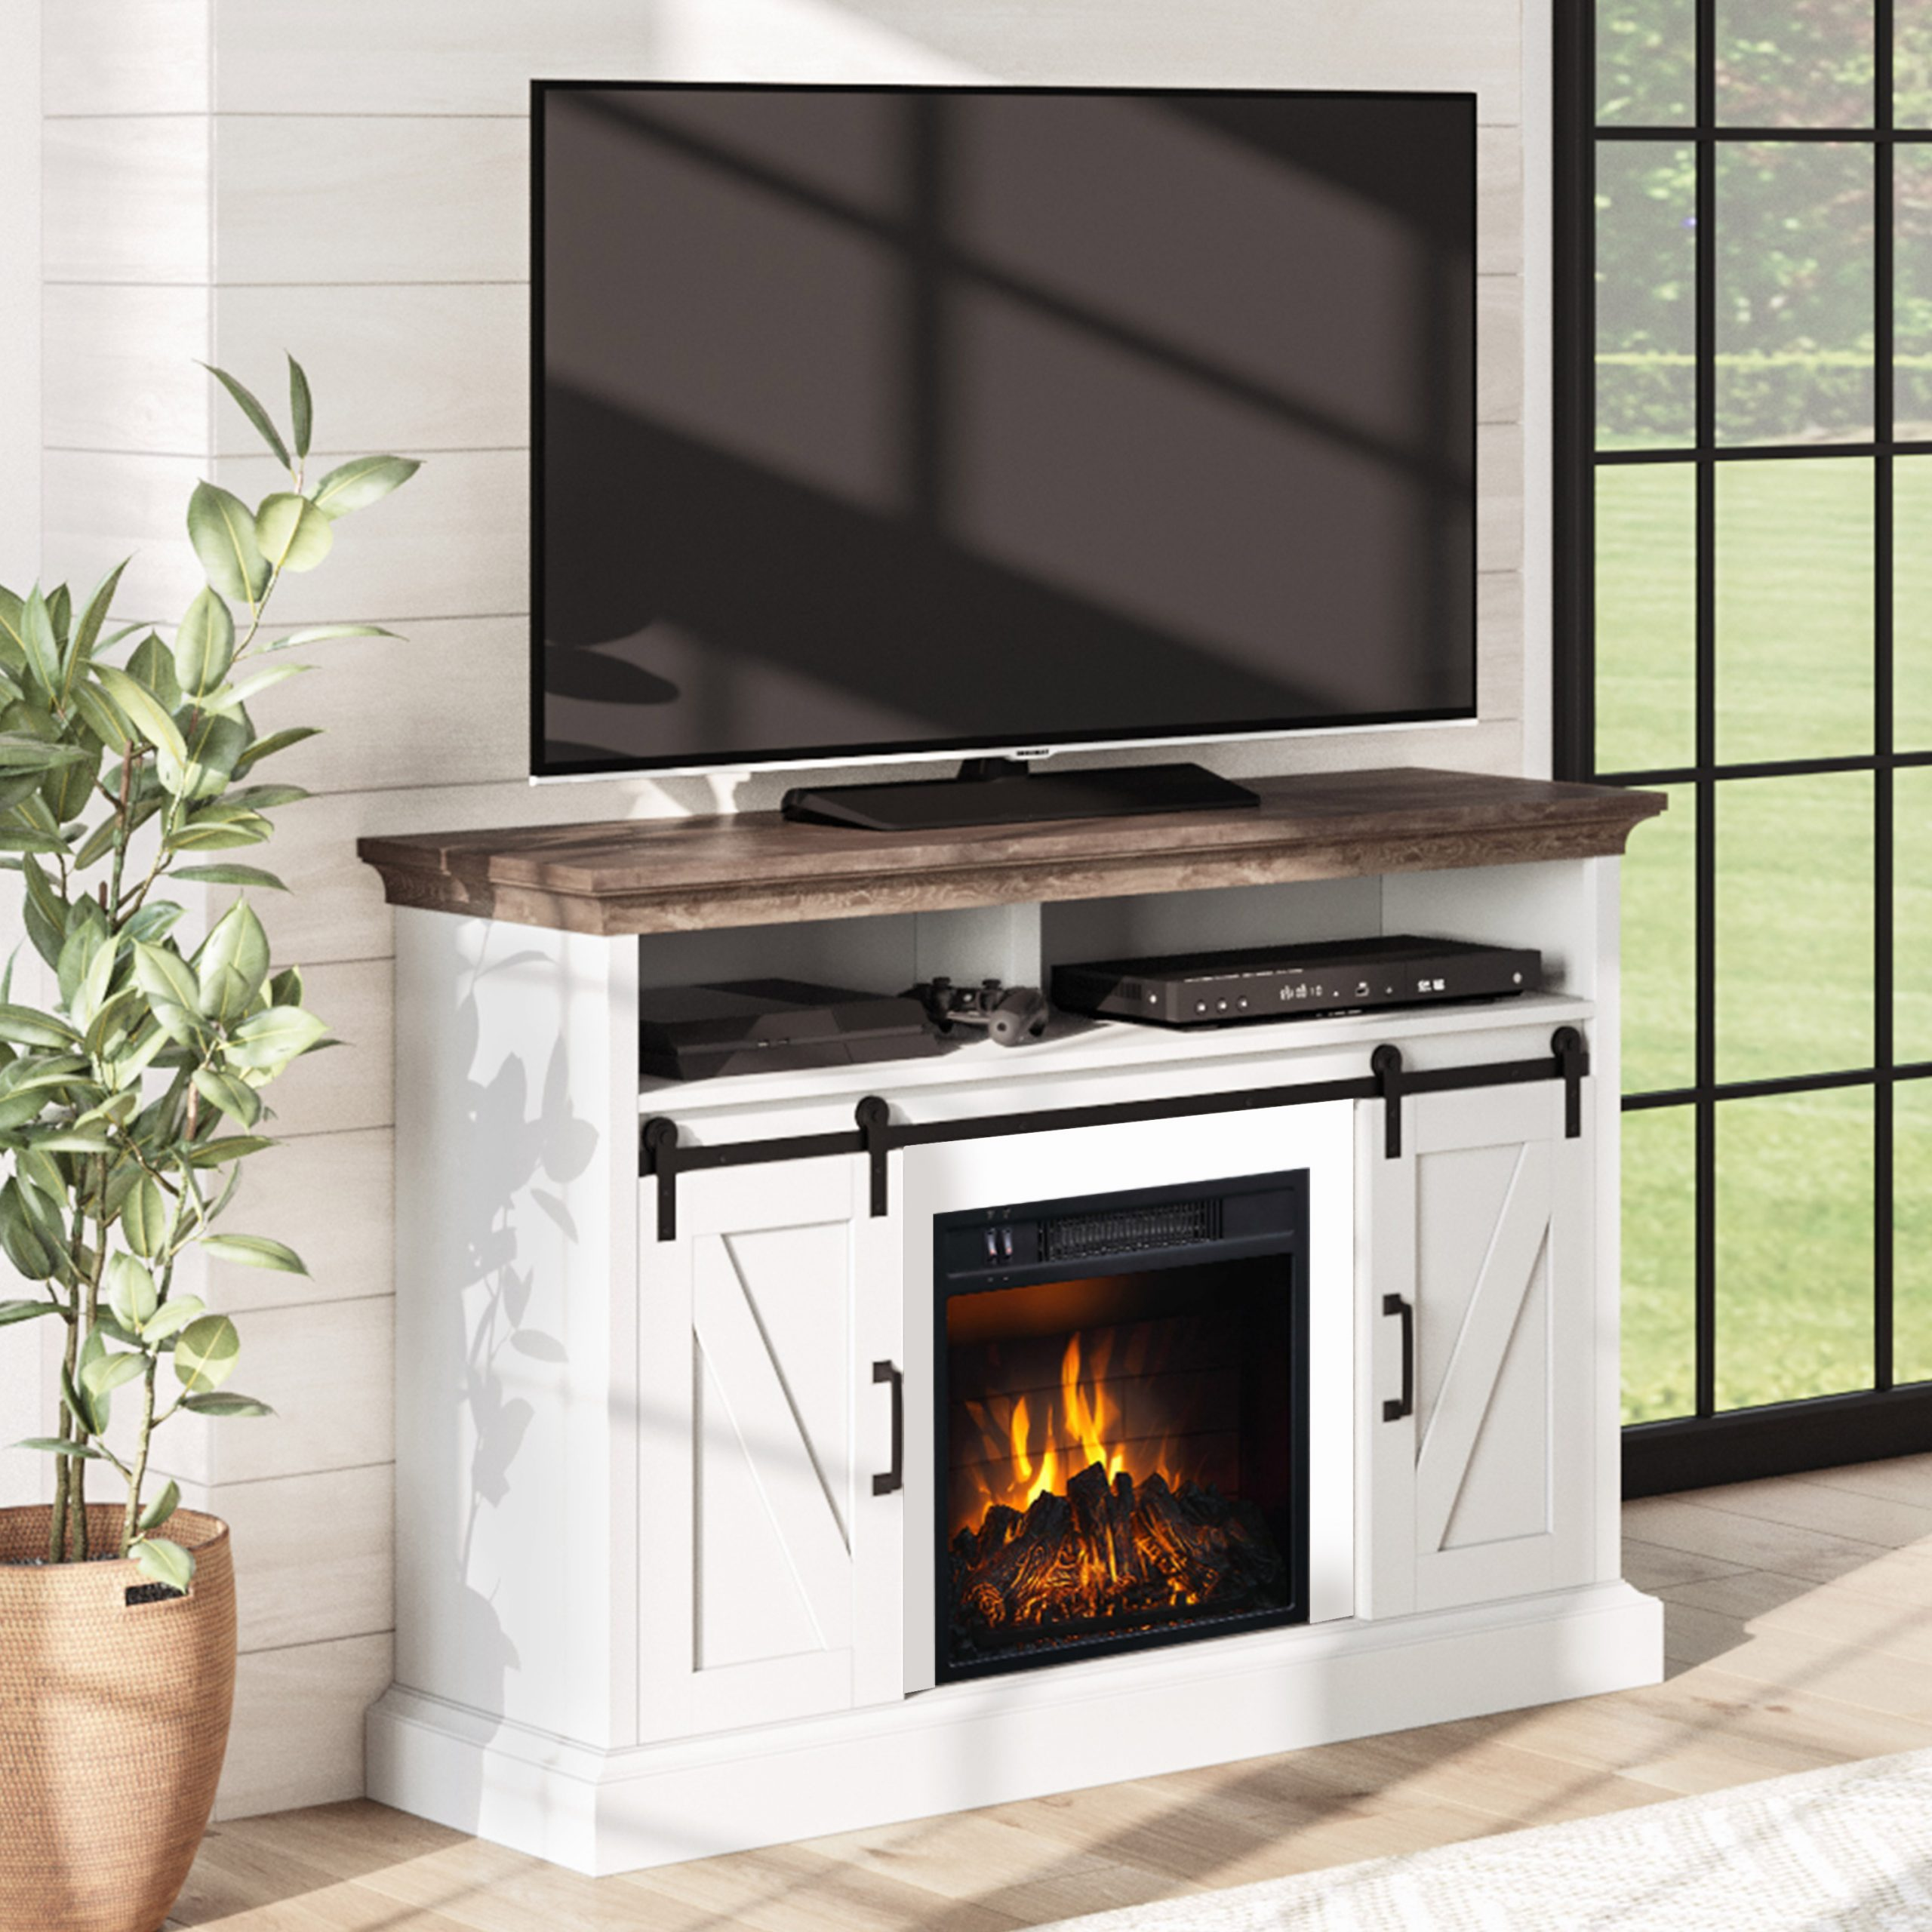 """Labarbera Tv Stands For Tvs Up To 58"""" With Regard To Best And Newest Whalen Allston Barn Door Fireplace Tv Stand For Tvs Up To (View 12 of 20)"""